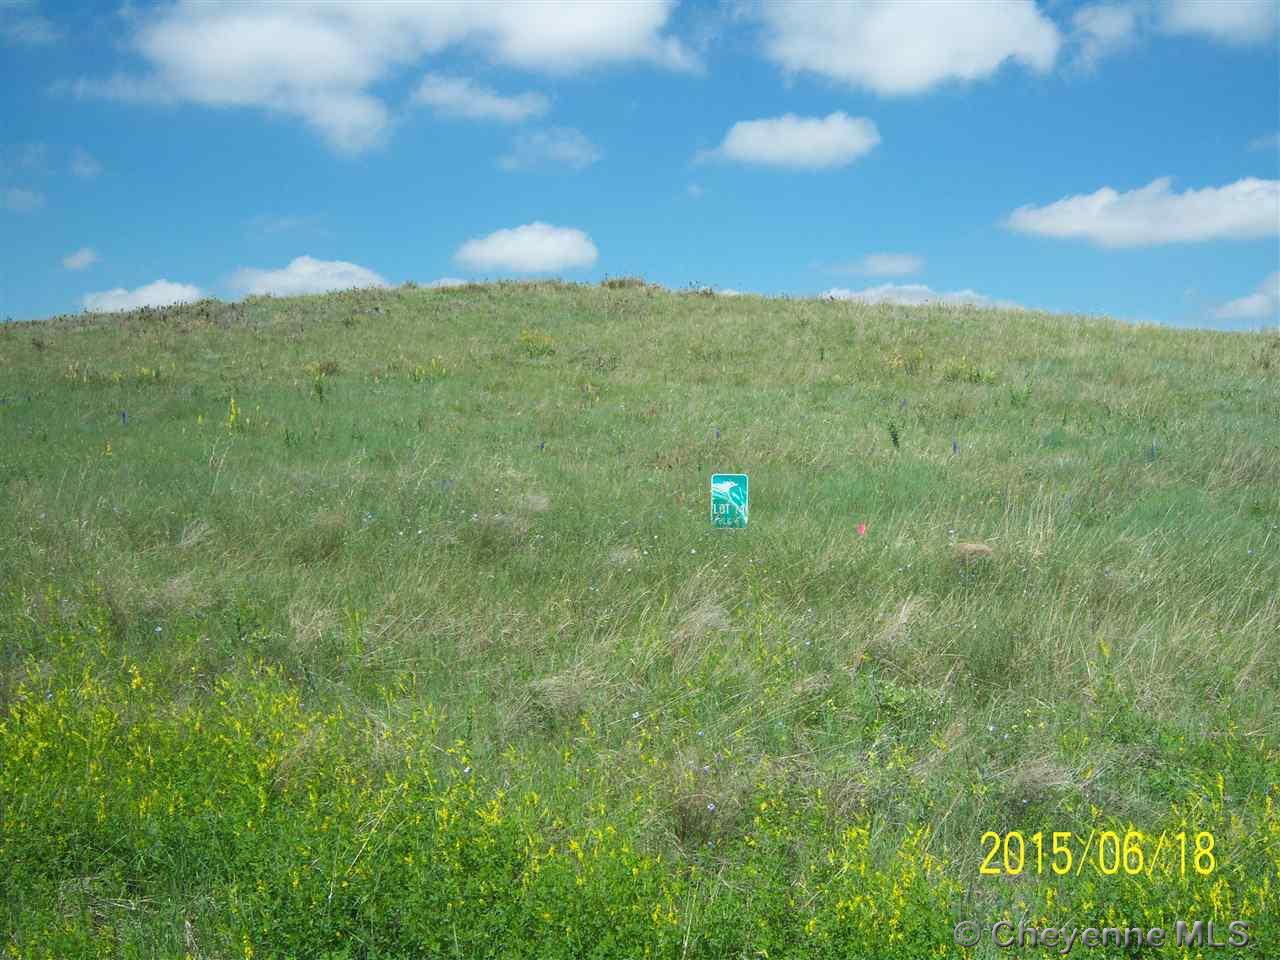 Land for Sale at Tbd Painted Horse T Cheyenne, Wyoming 82009 United States